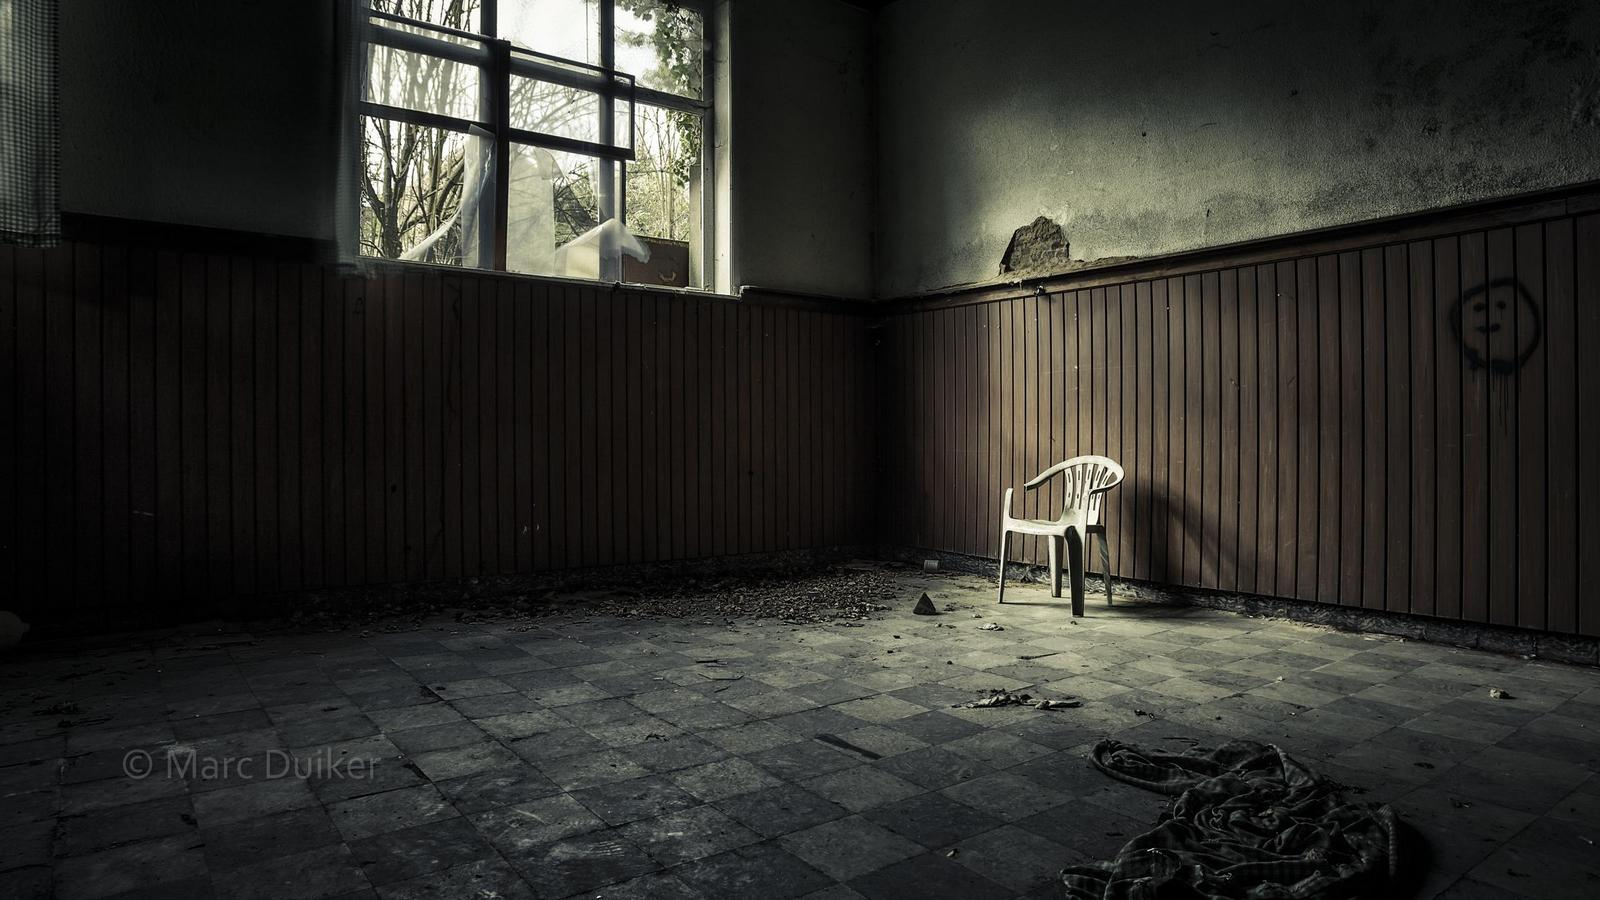 'After the interrogation' © by Marc Duiker